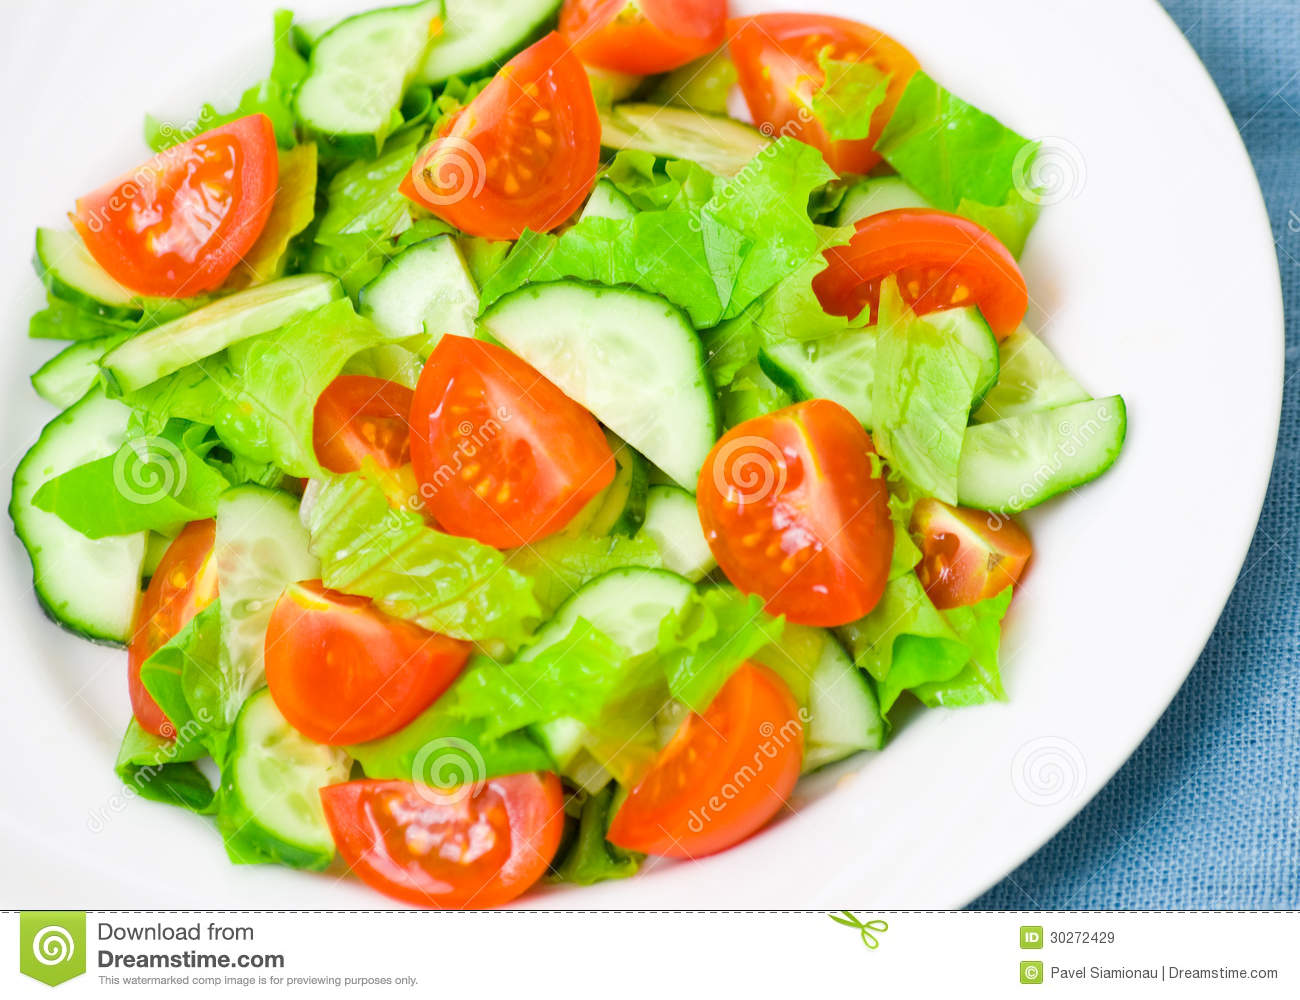 Top 5 of Fresh Vegetable Salad Without Lettuce | My Ideas Bedroom